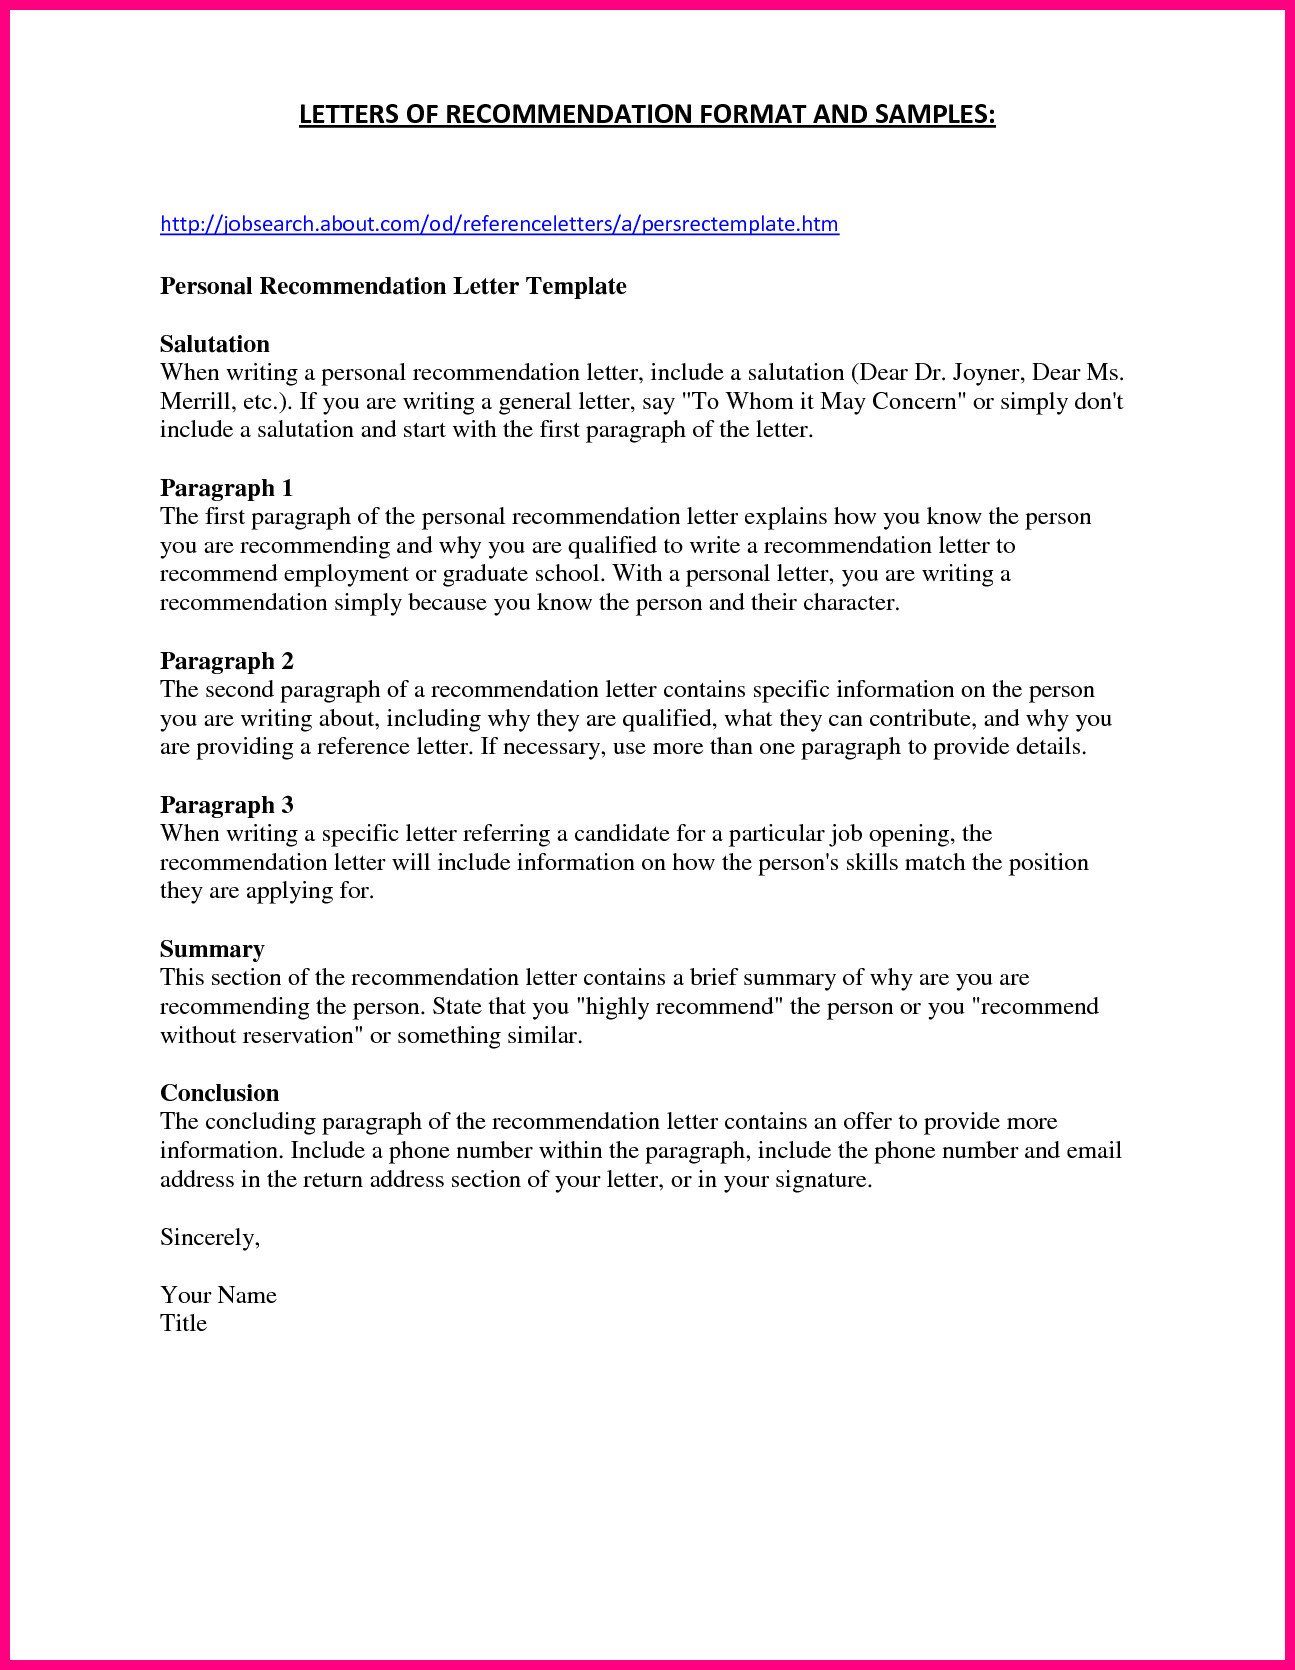 Social Security Award Letter Template Samples | Letter